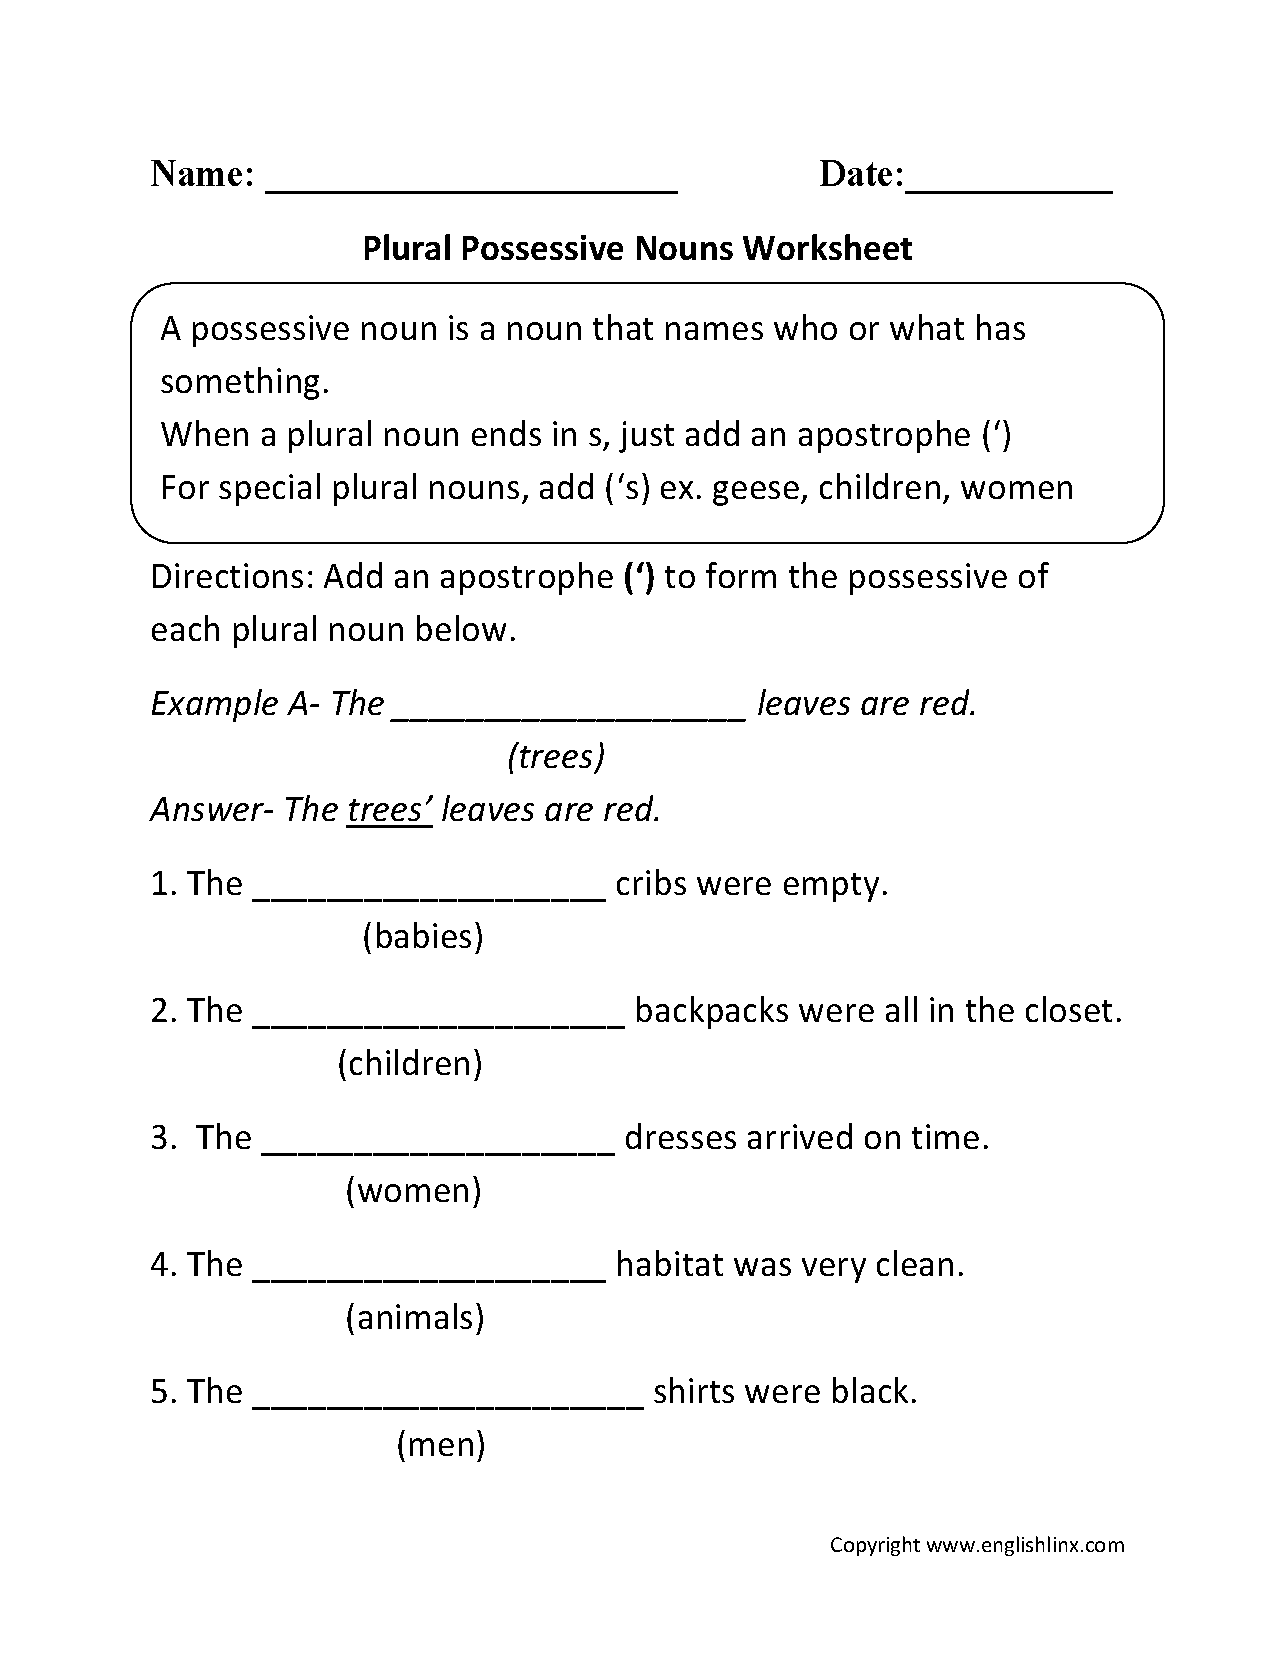 Worksheets Possessive Nouns Worksheets plural possessive nouns worksheets more